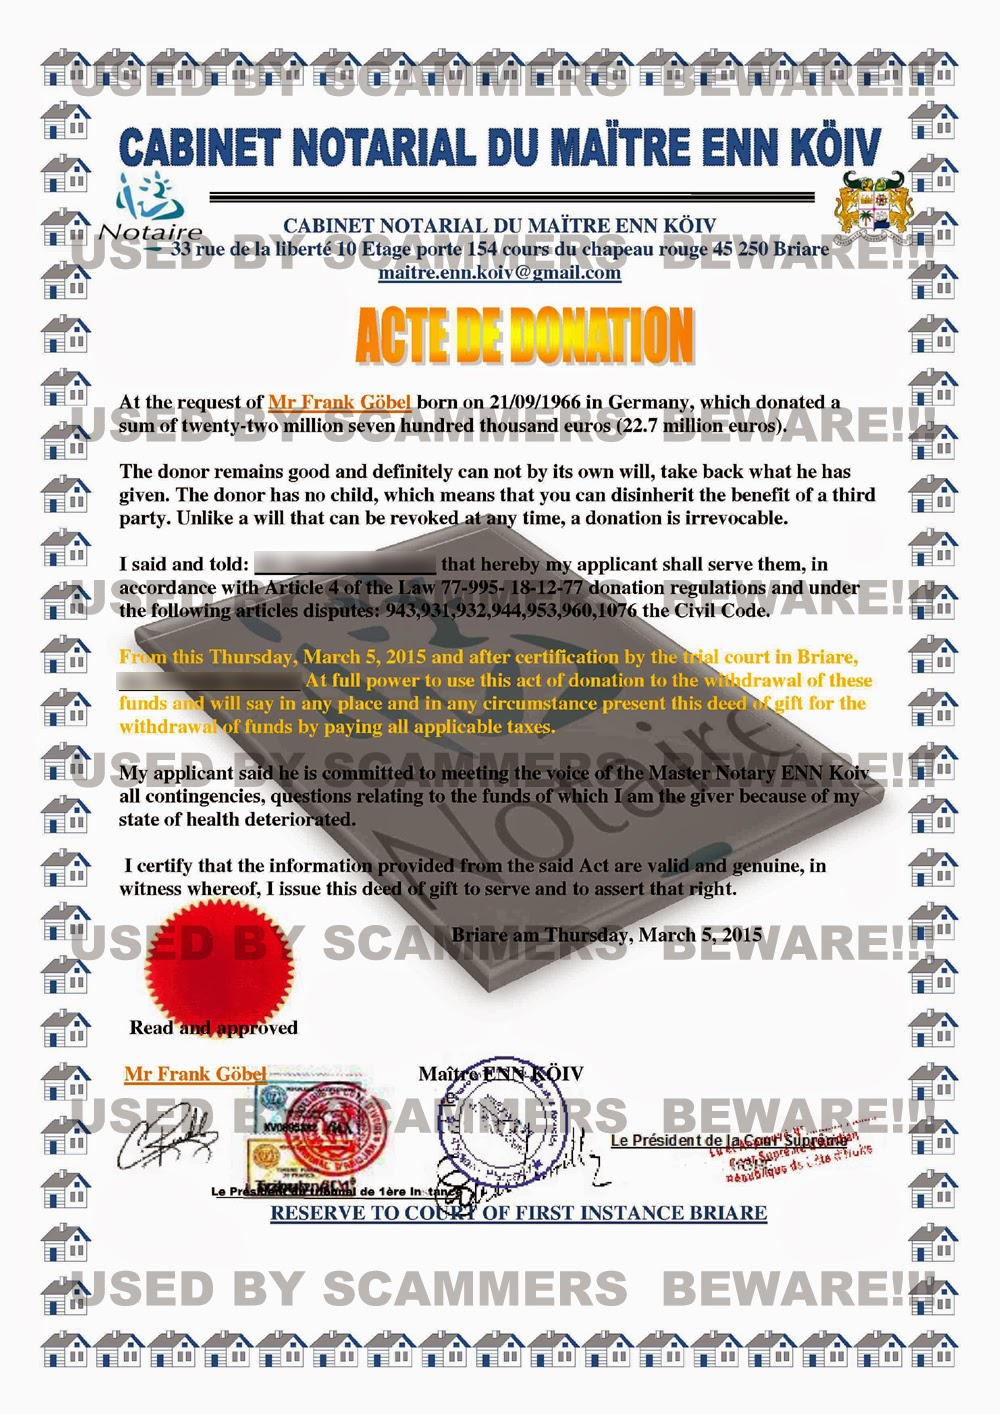 FRAUD FYI Scam Email With Fake Legal Documents From Office Of - Fake legal documents